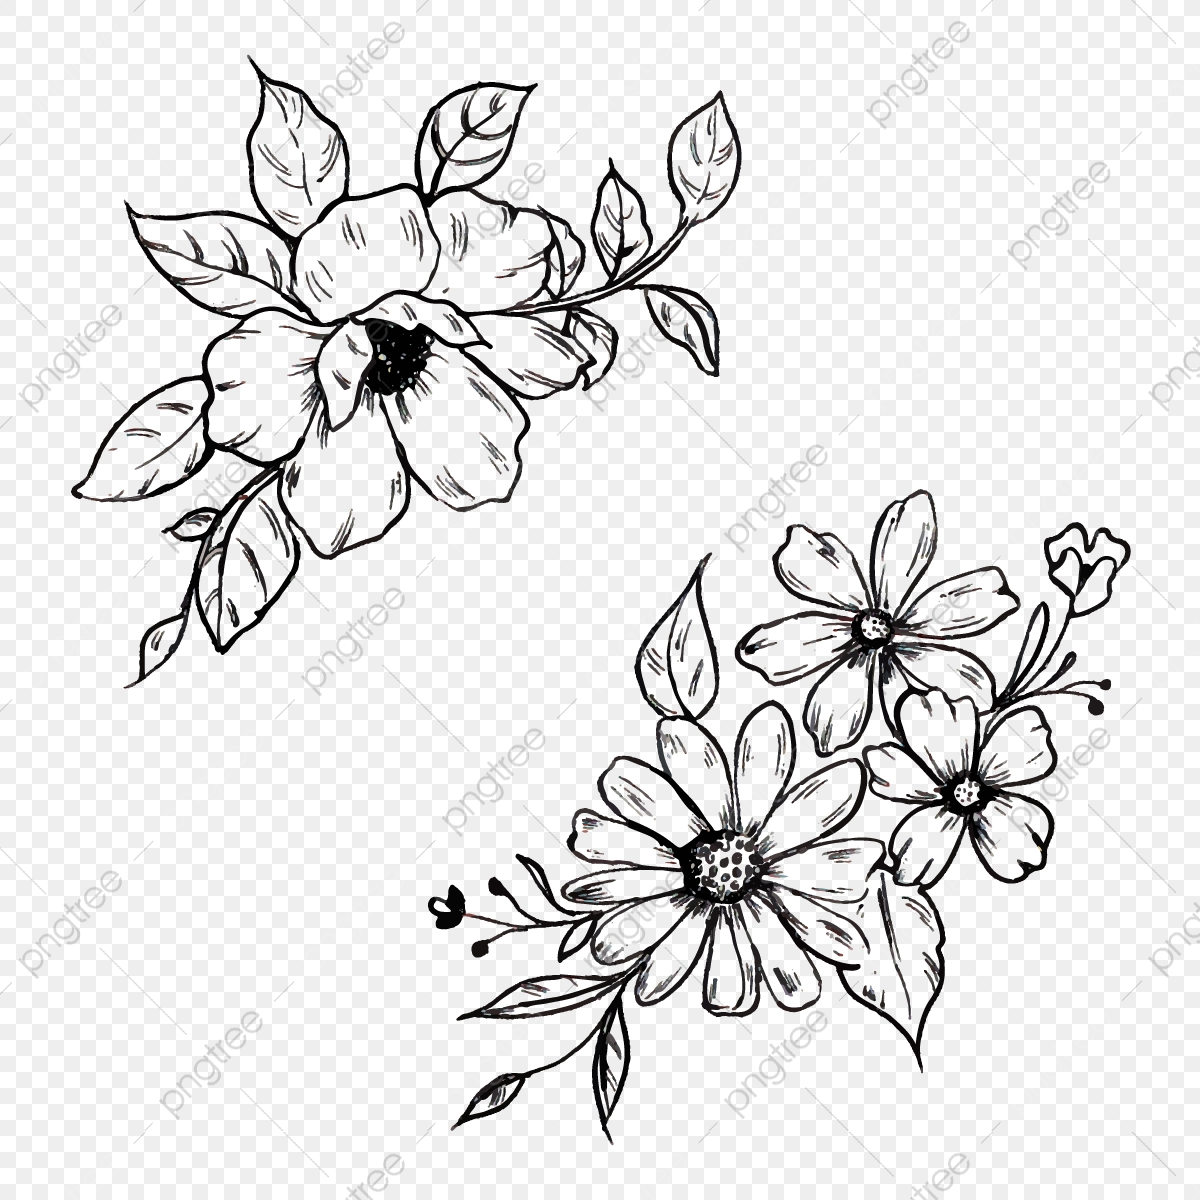 Hand Drawn Black And White Floral Png Element, Line, Art, Flowers ...